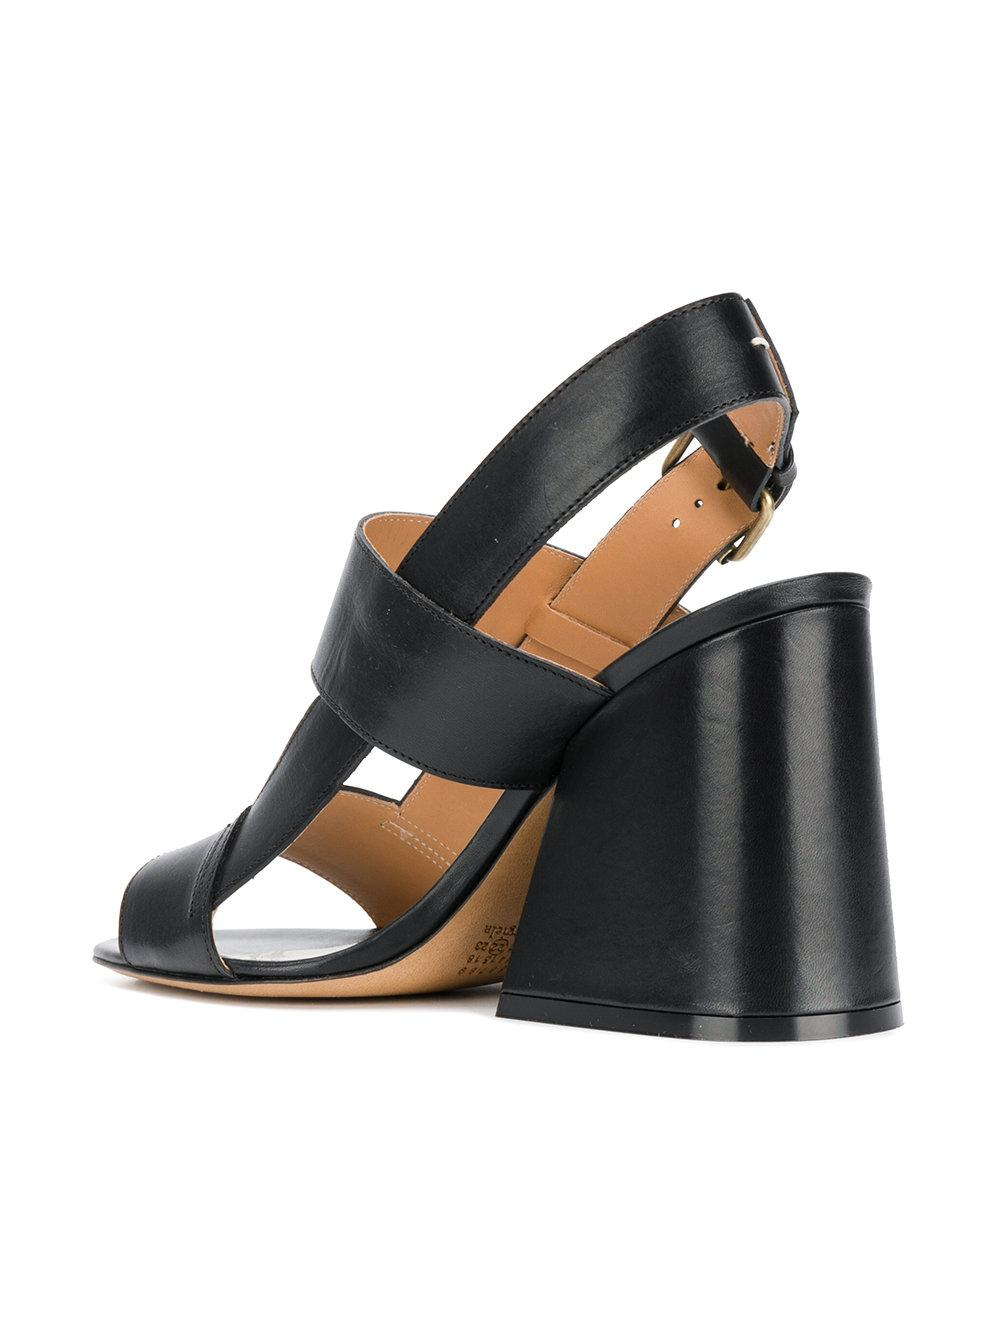 classic open-toe sandals - Black Maison Martin Margiela NCE4Rs